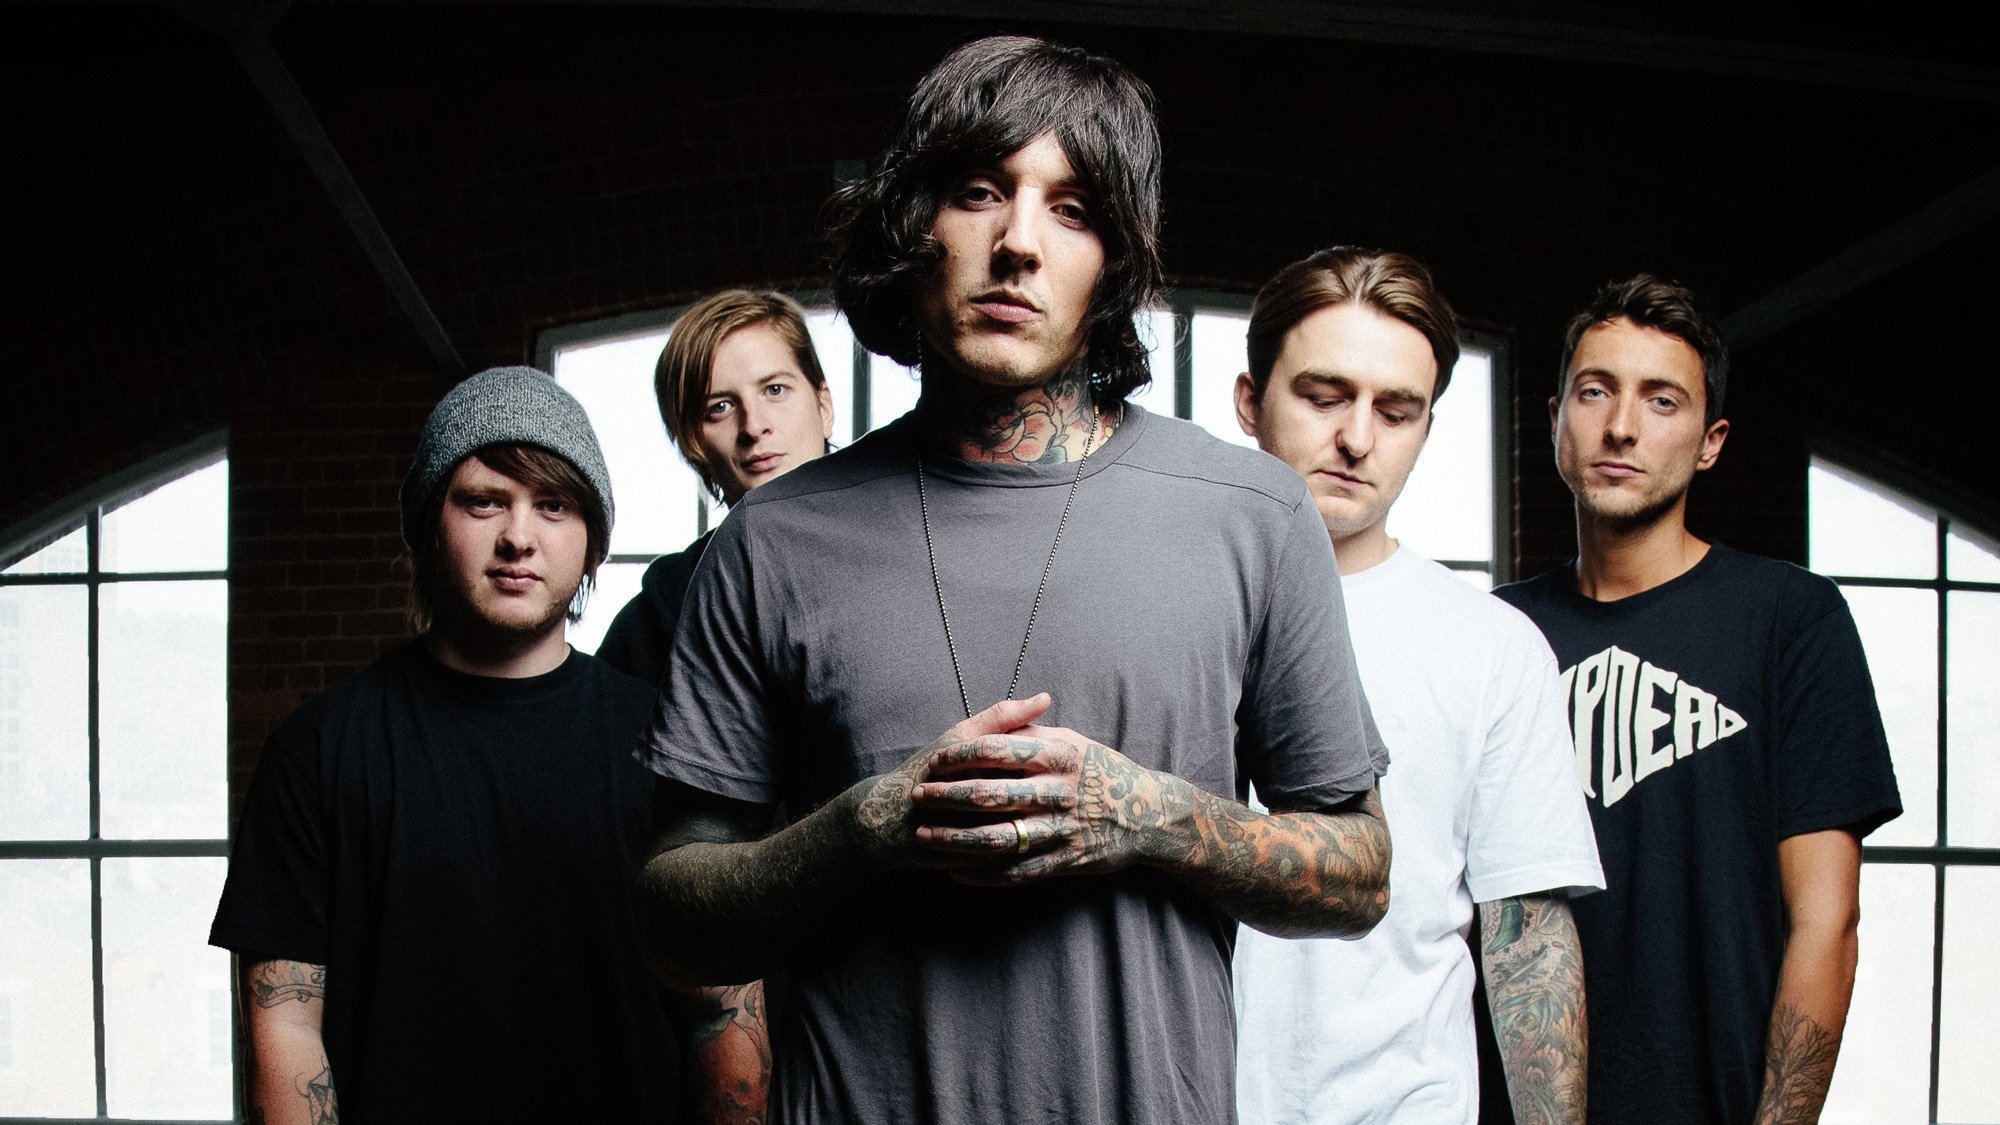 the bedroom sessions bring me the horizon bring me the horizon bedroom sessions cd www indiepedia org 21166